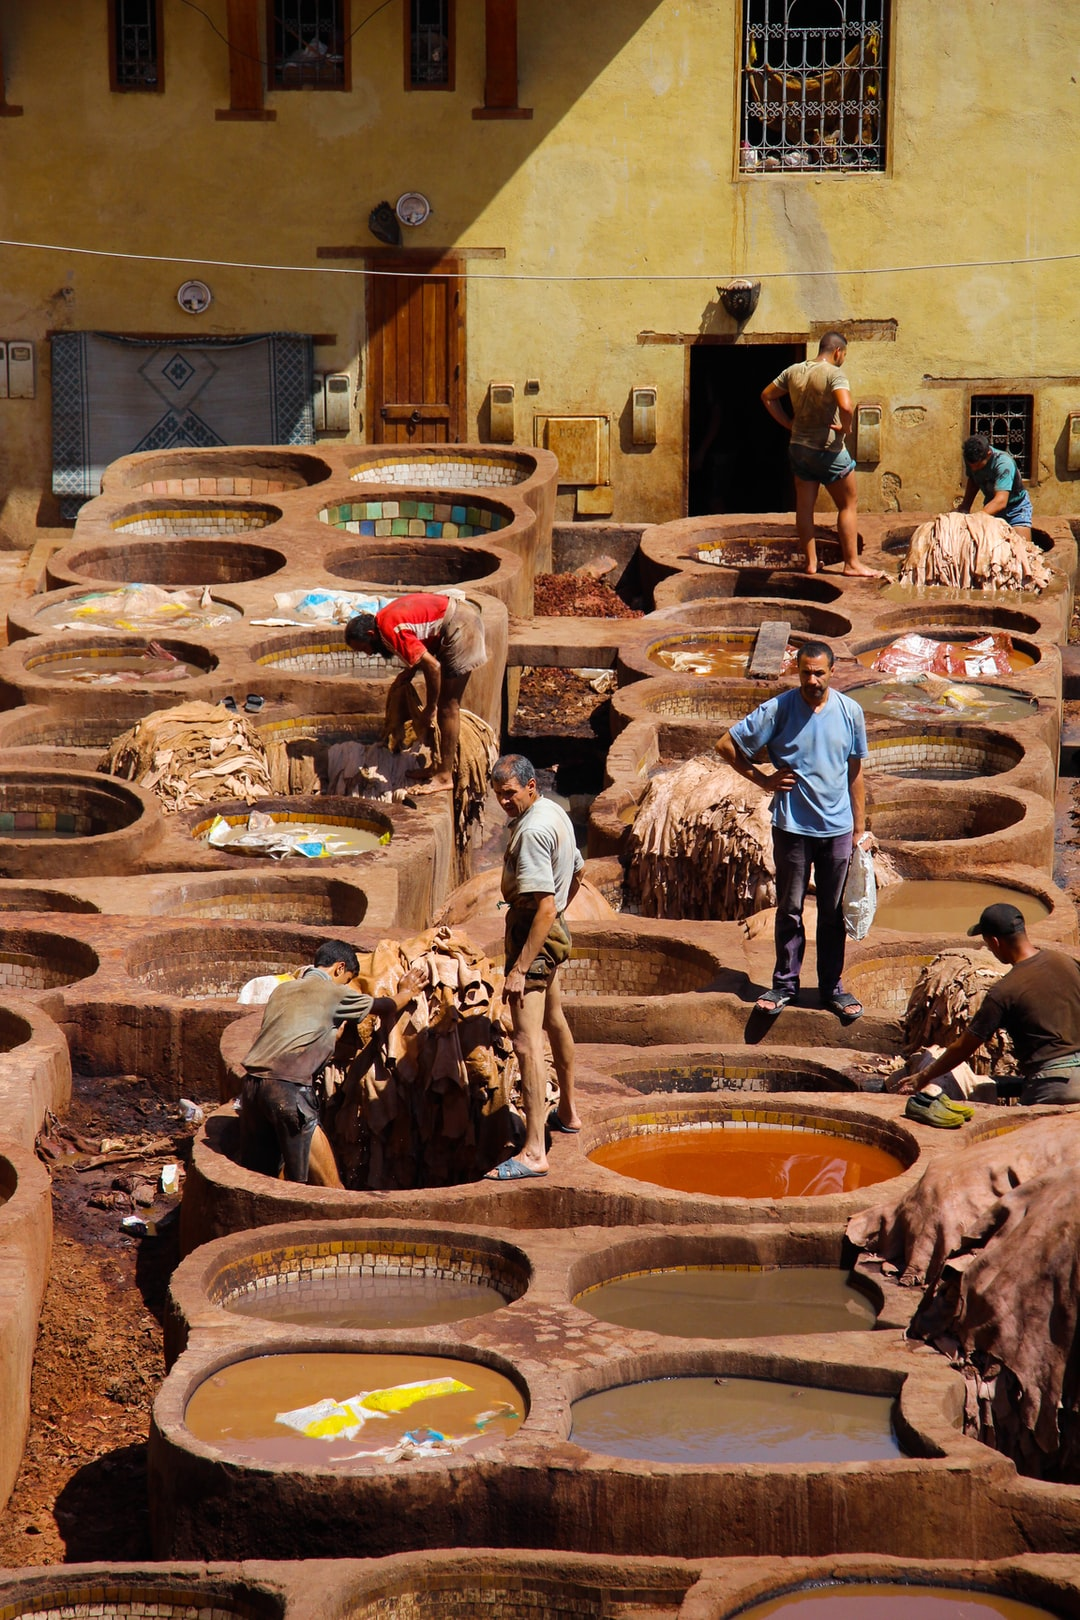 The typical tanners from Morocco